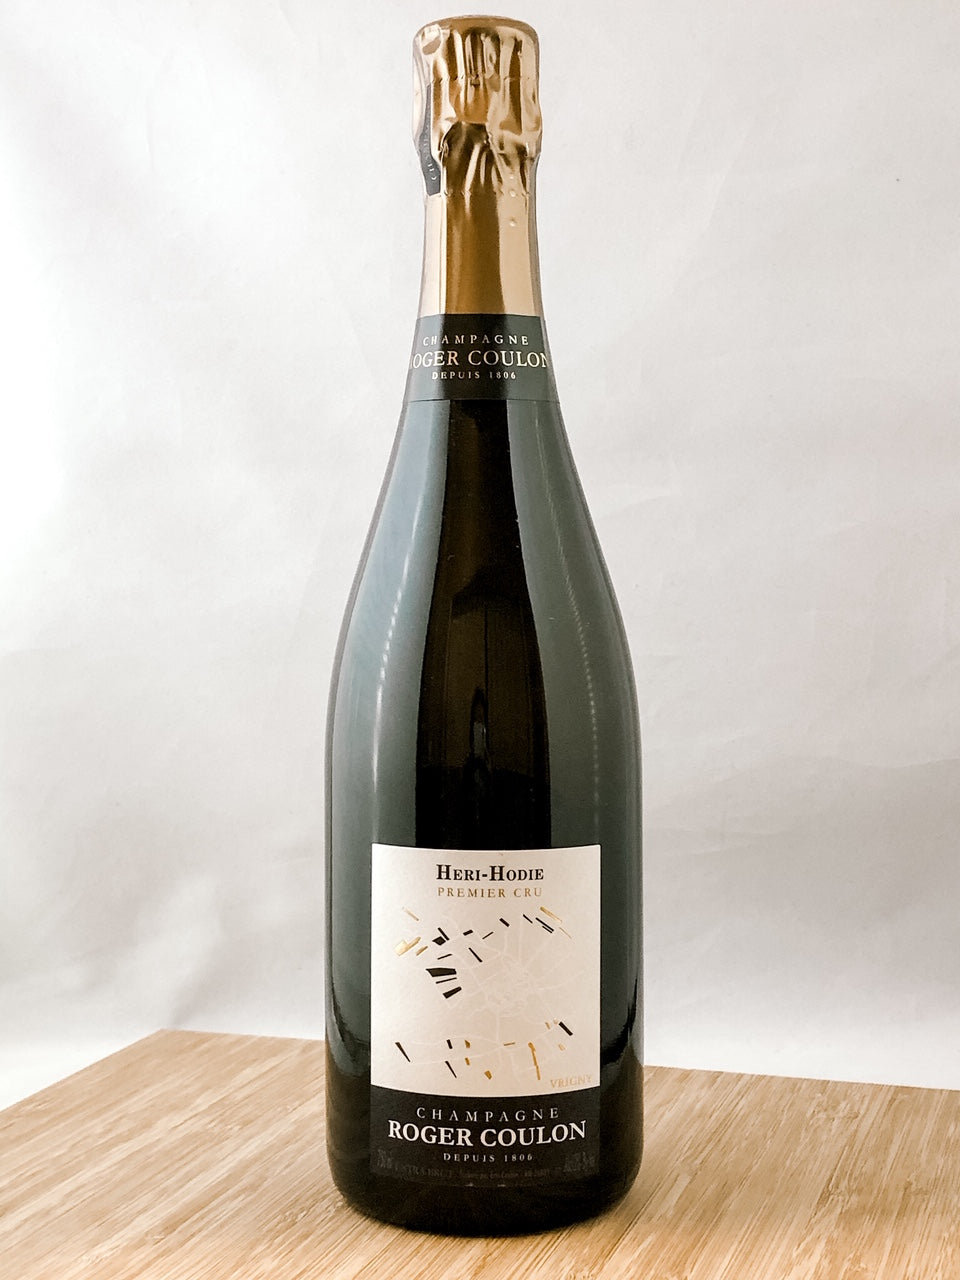 Roger Coulon champagne, part of our champagne delivery and great for unique gift ideas.